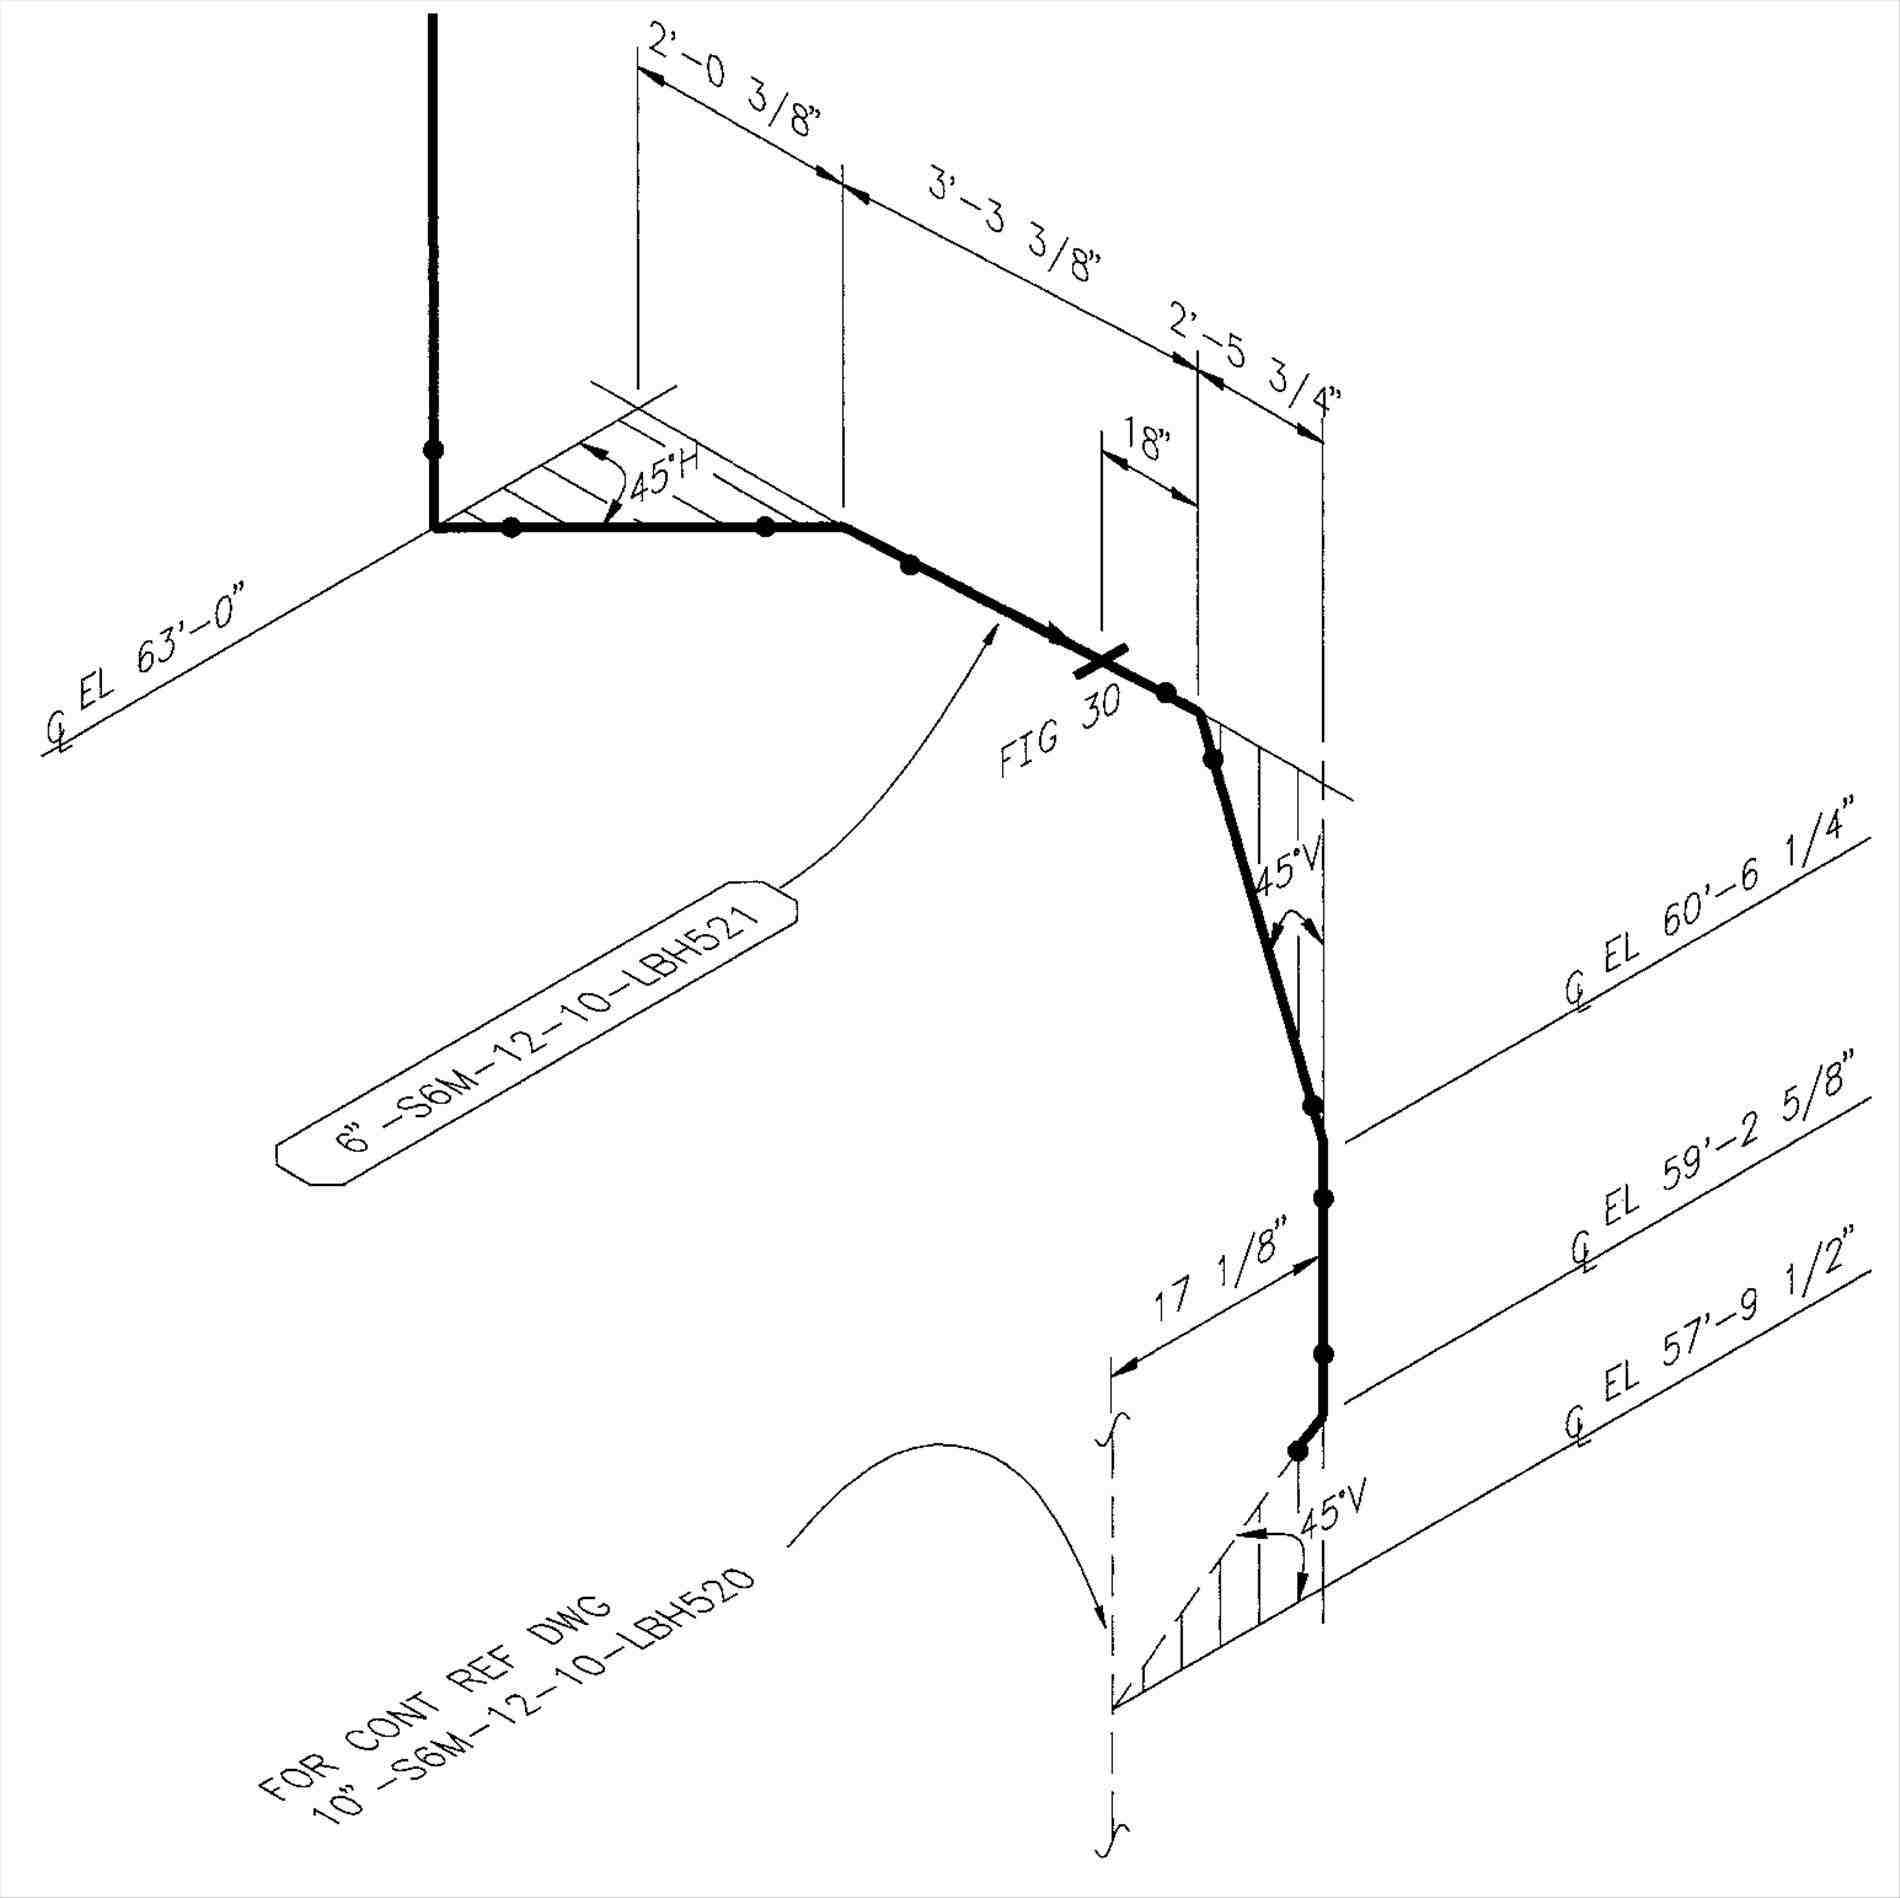 Pipe Drawing At Free For Personal Use Piping Diagram Symbols Pictures 1900x1898 Gallery